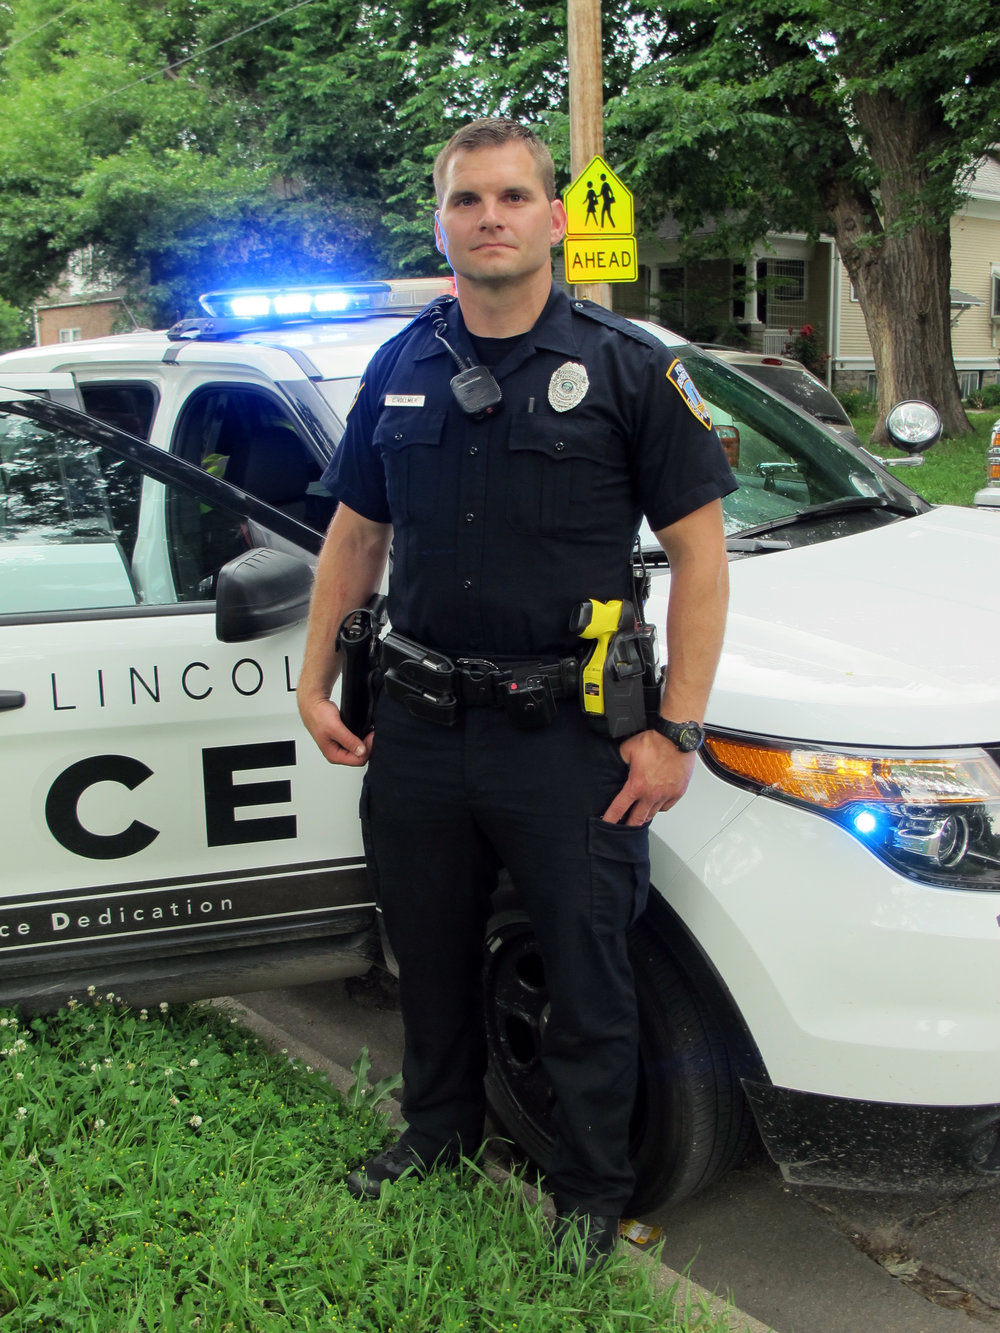 NPOST is used by the Lincoln, Nebraska Police Department